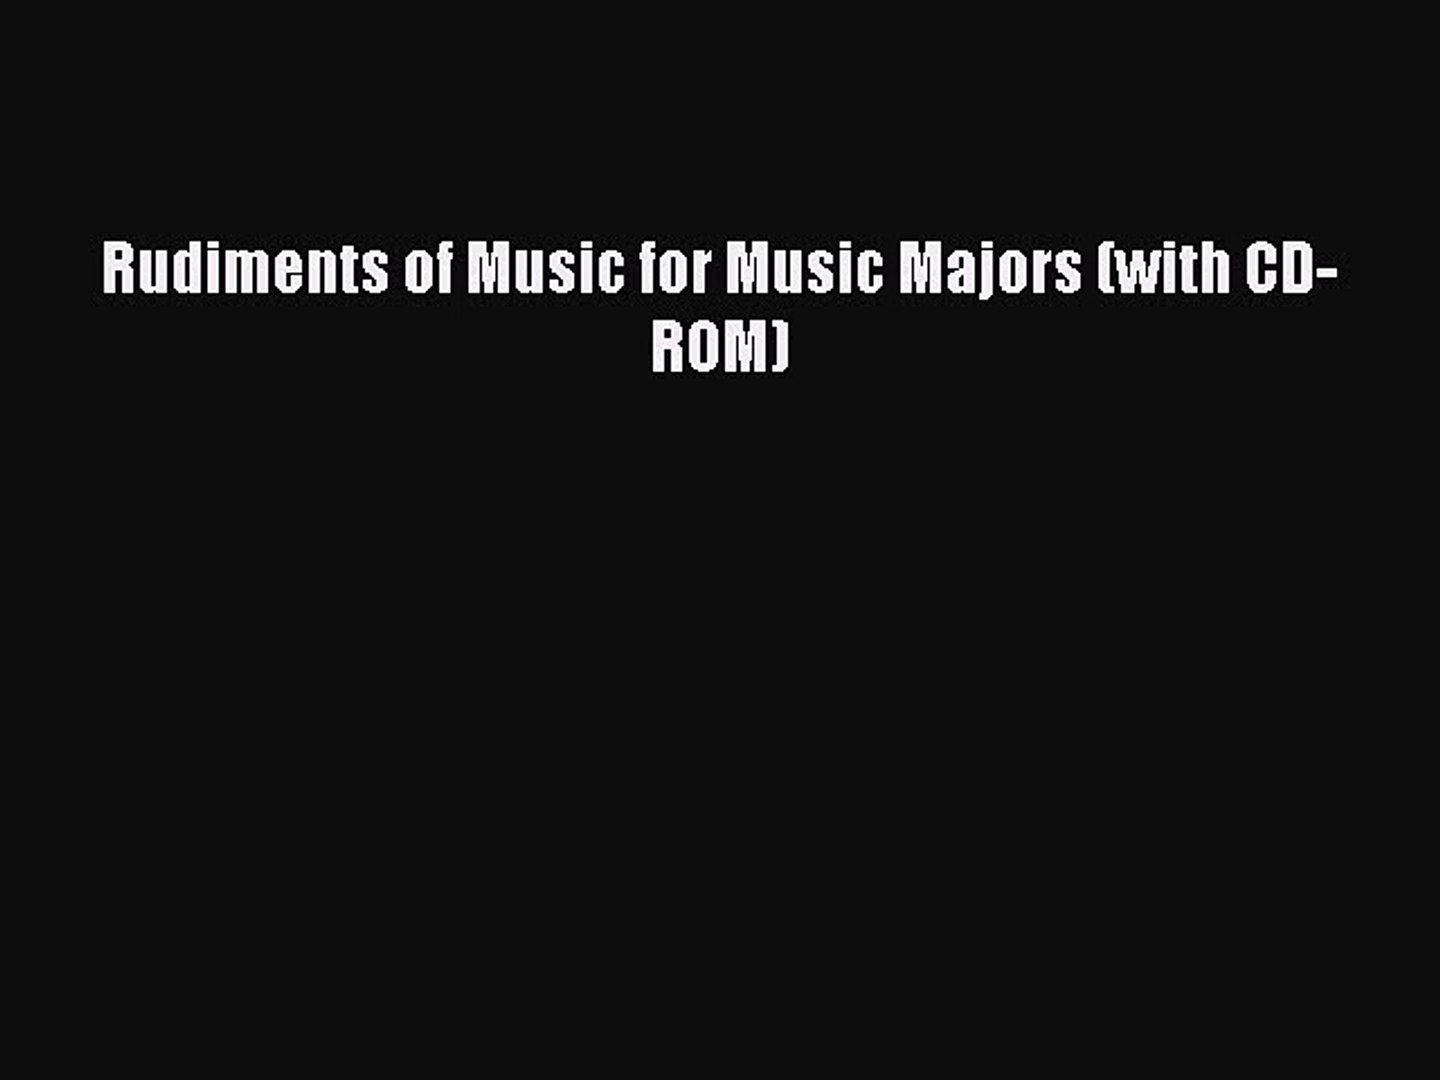 [PDF Download] Rudiments of Music for Music Majors (with CD-ROM) [Download] Full Ebook